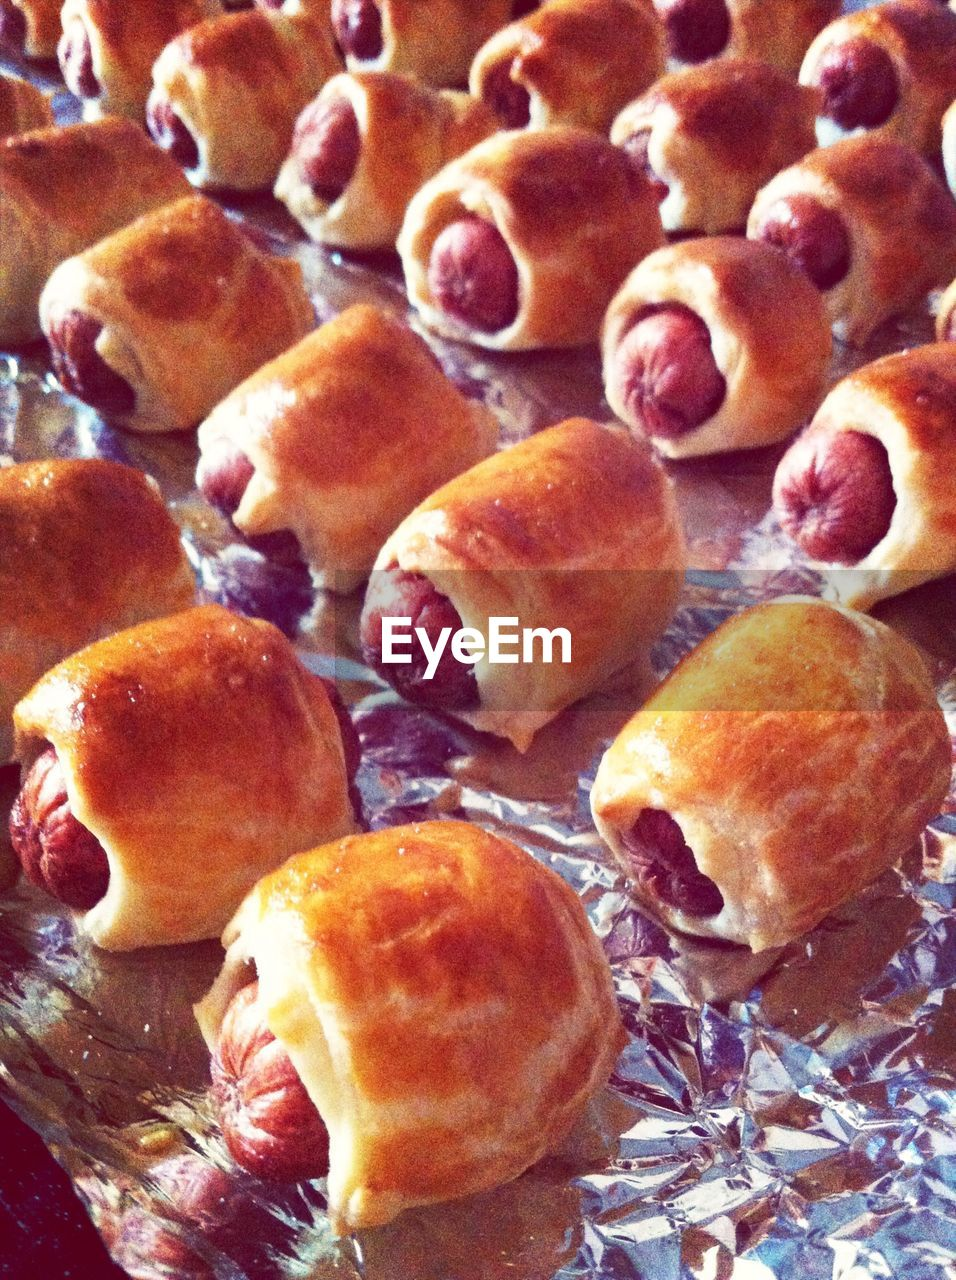 View Of Sausages In Baked Pastry